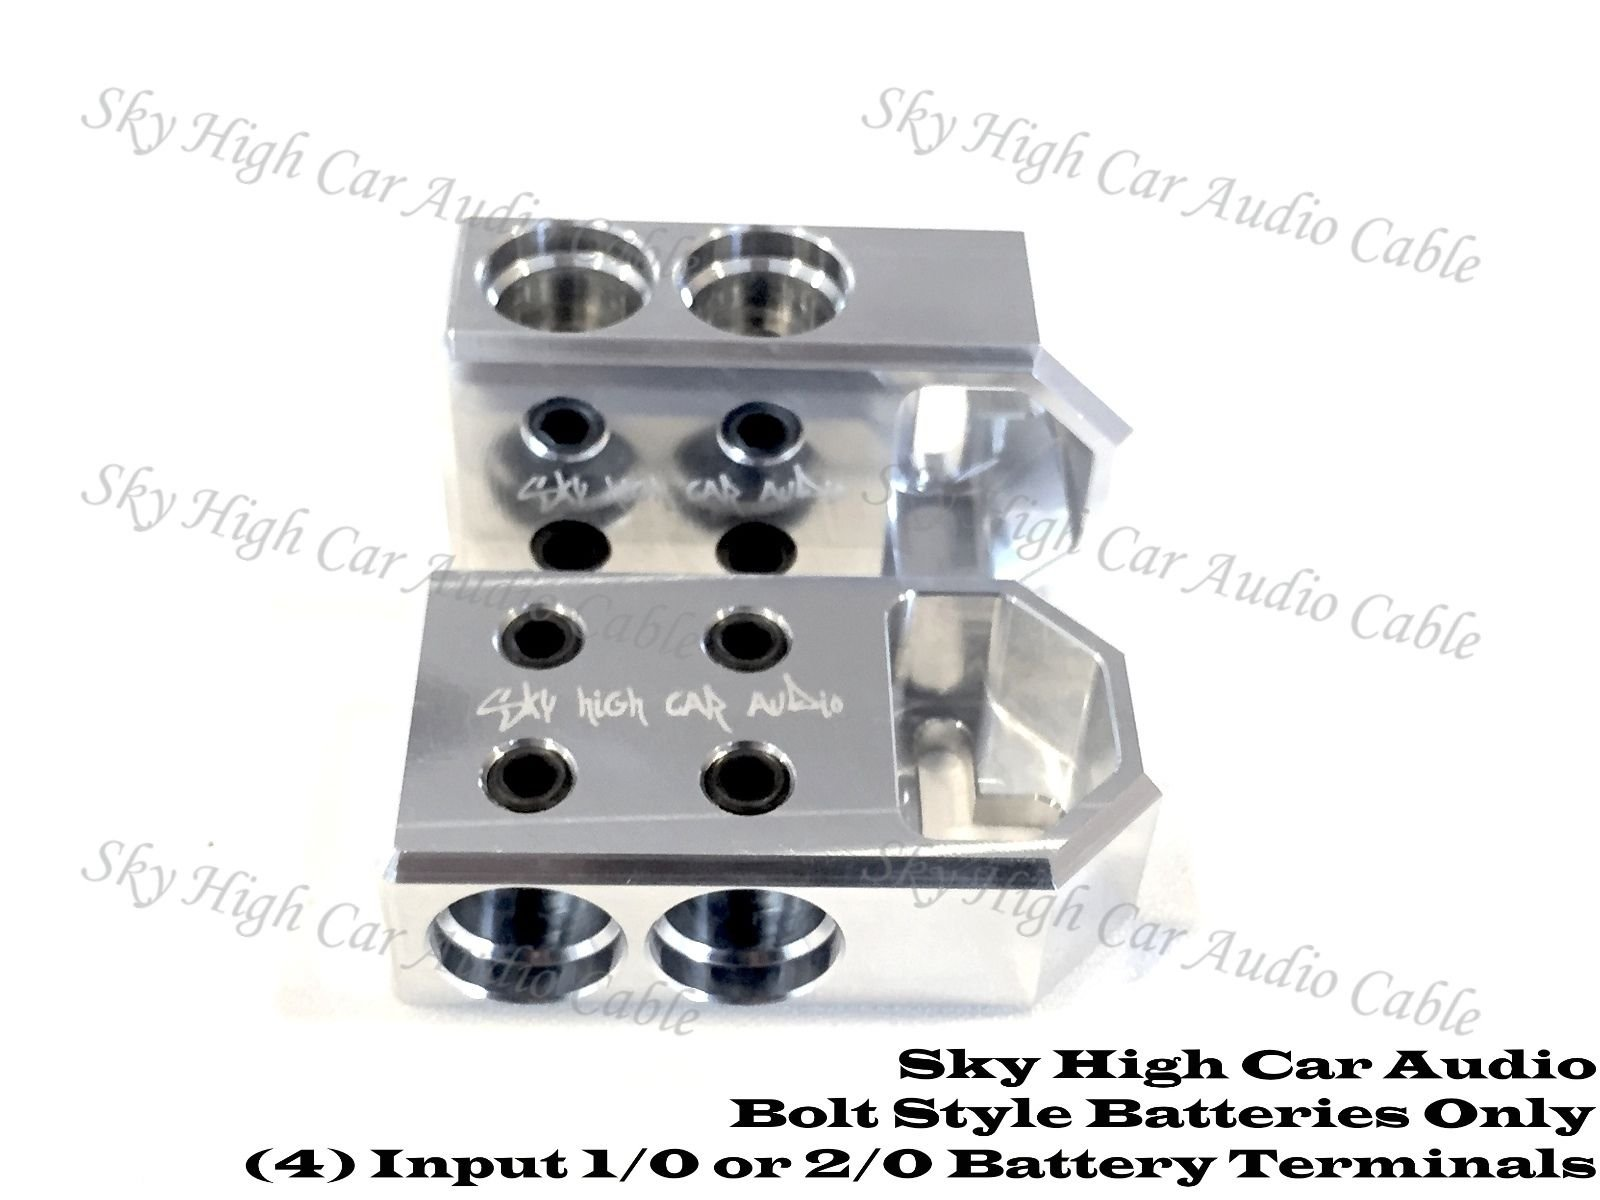 Pair of Sky High Car Audio (4) 2/0 or 1/0 Gauge BATTERY TERMINALS BOLT USE ONLY